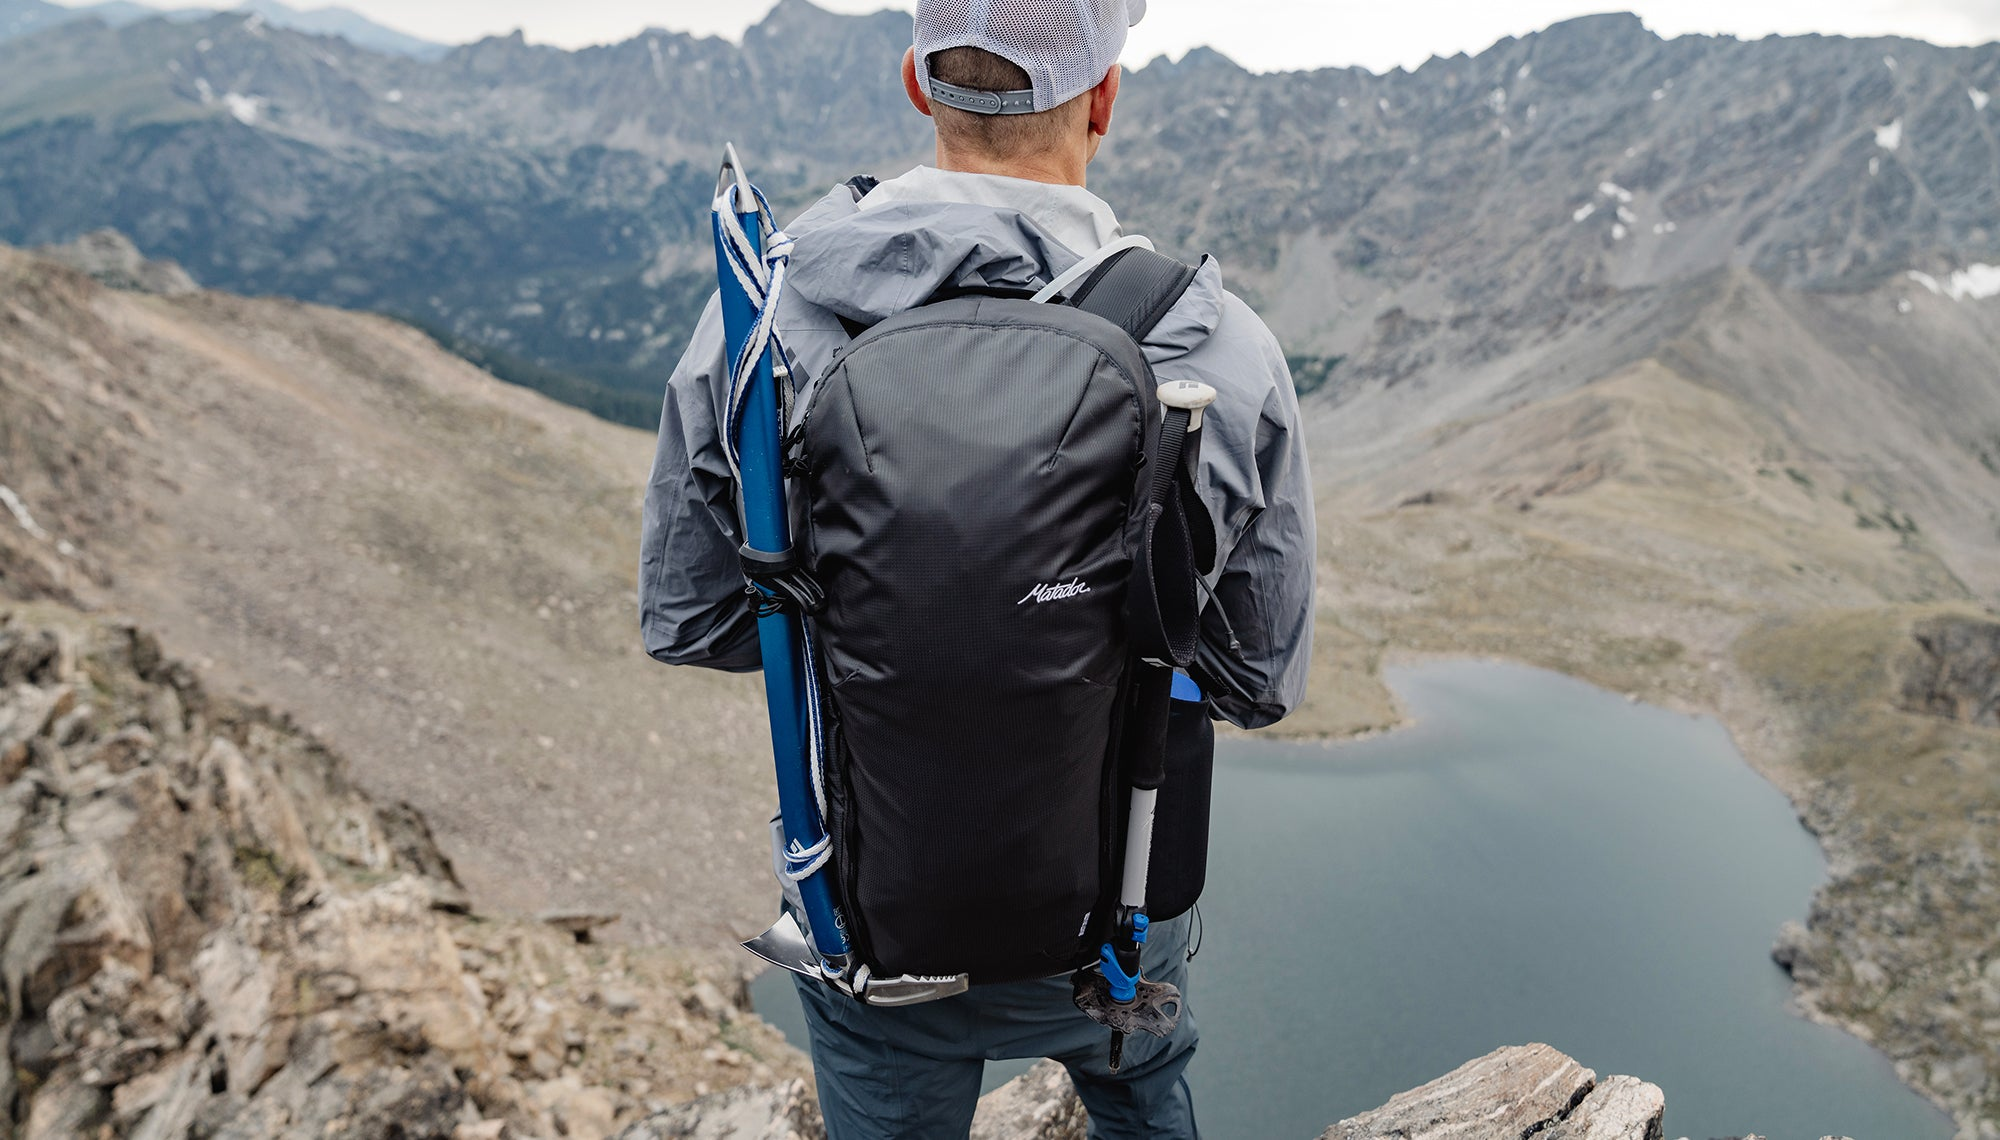 Back view of man wearing a backpack, standing on a mountain ridge